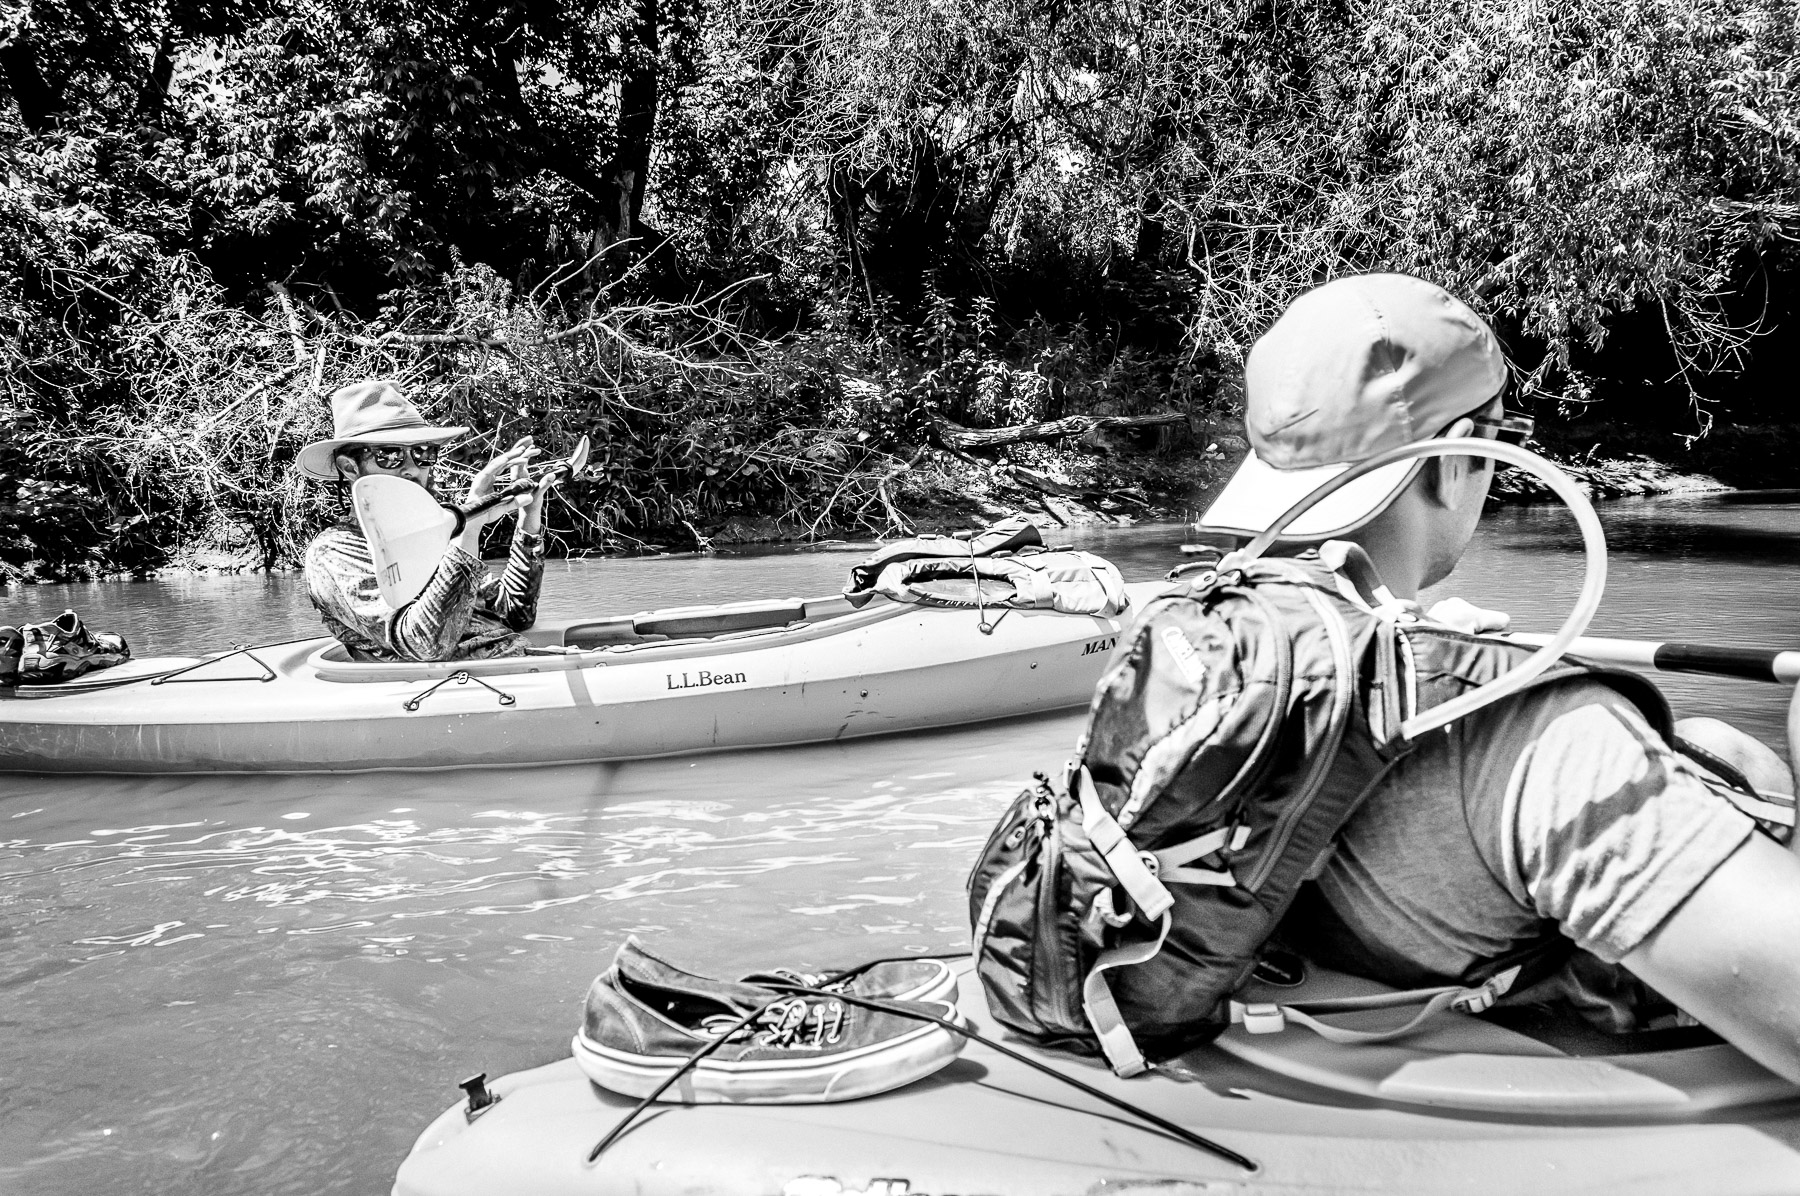 kaYaking 6-17-16 (6 of 15).jpg